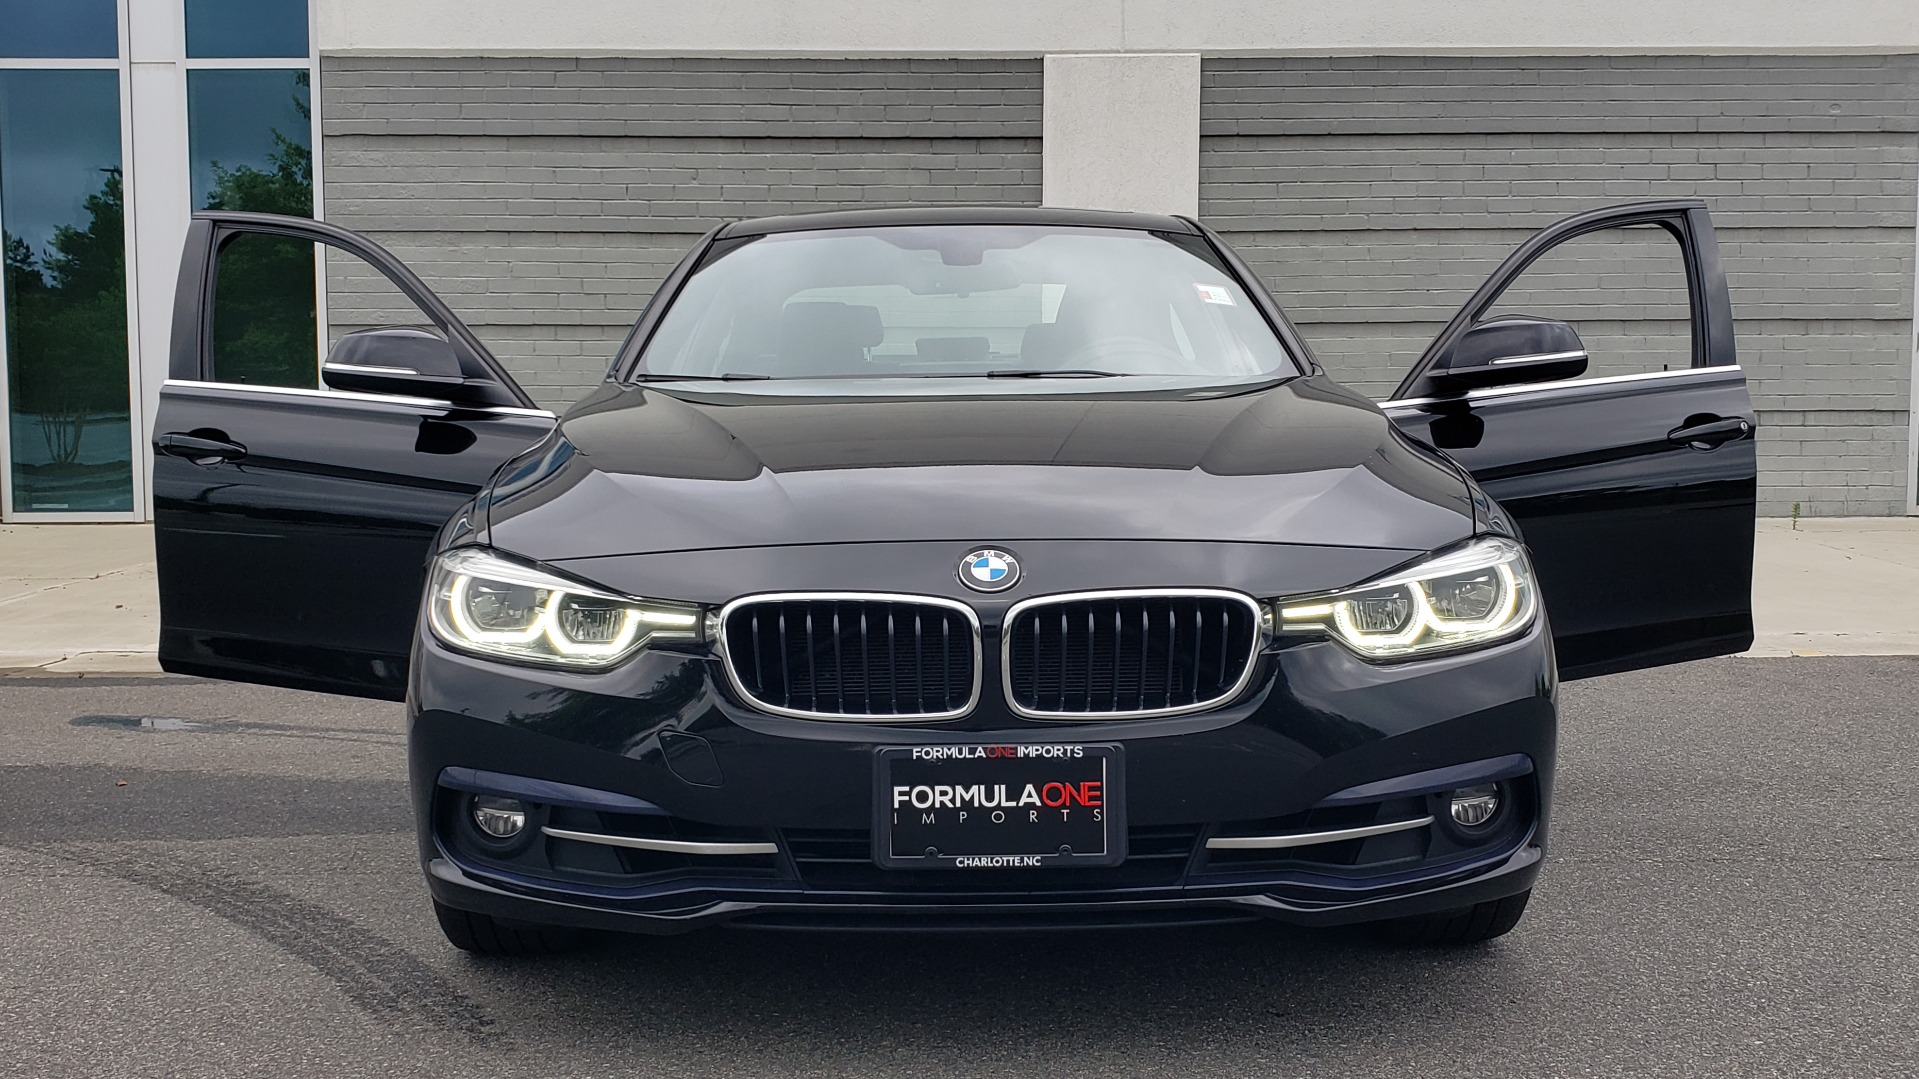 Used 2018 BMW 3 SERIES 330IXDRIVE / CONV PKG / NAV / SUNROOF / HTD STS / REARVIEW for sale $26,552 at Formula Imports in Charlotte NC 28227 19